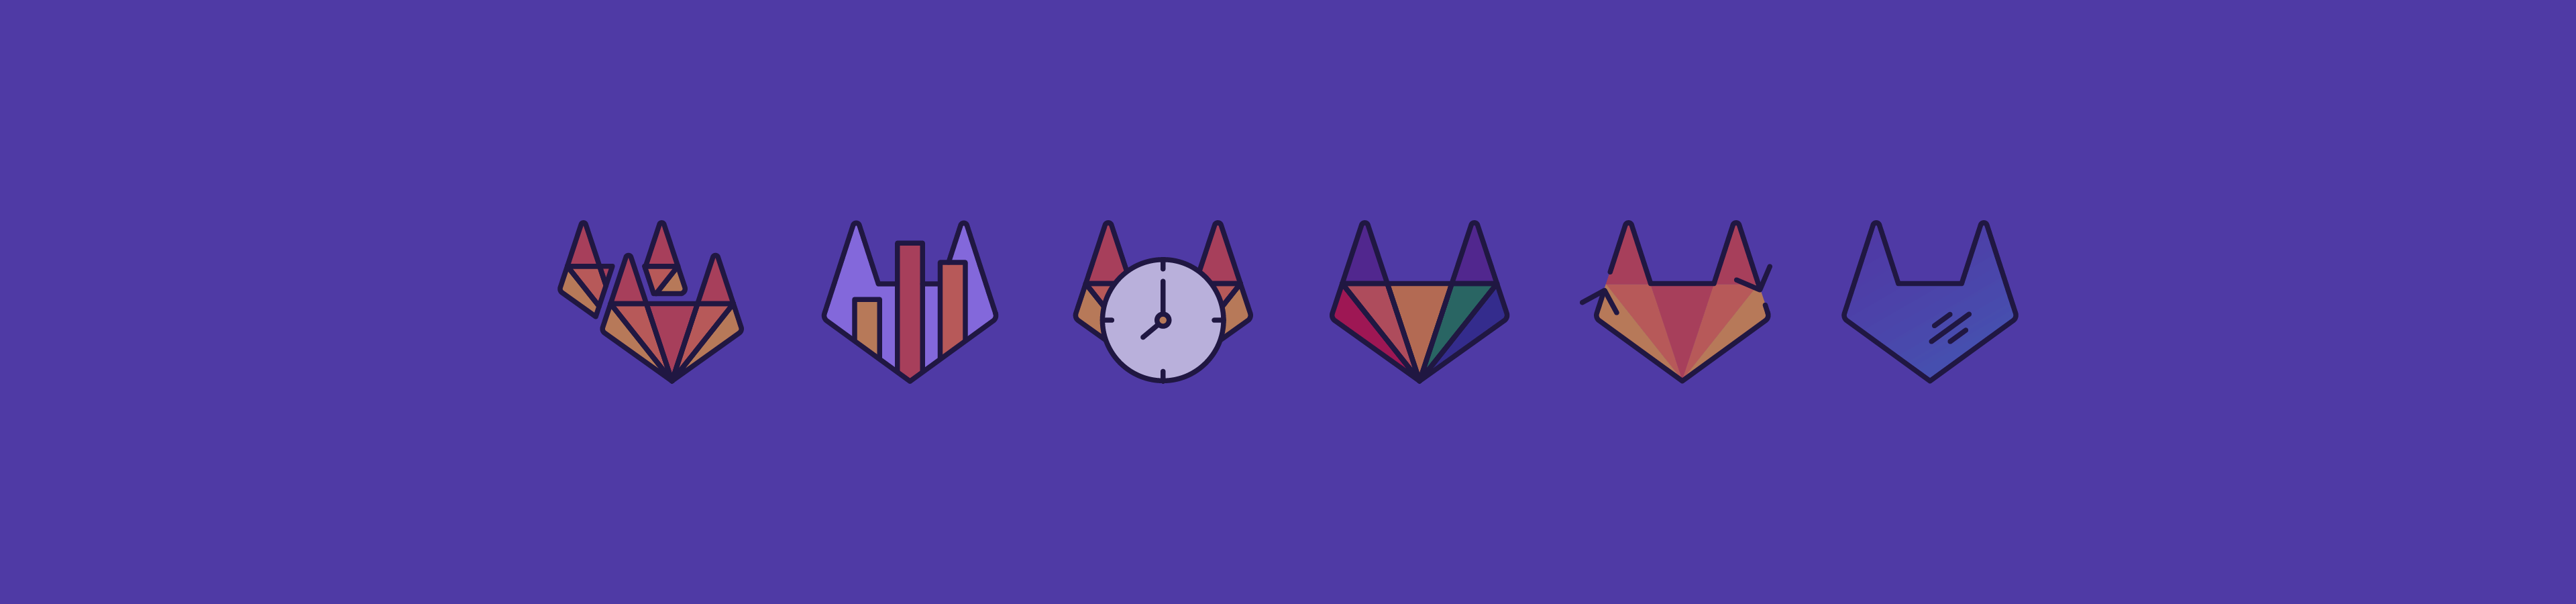 Top Ten Reasons to Check Out GitLab's Virtual Commit